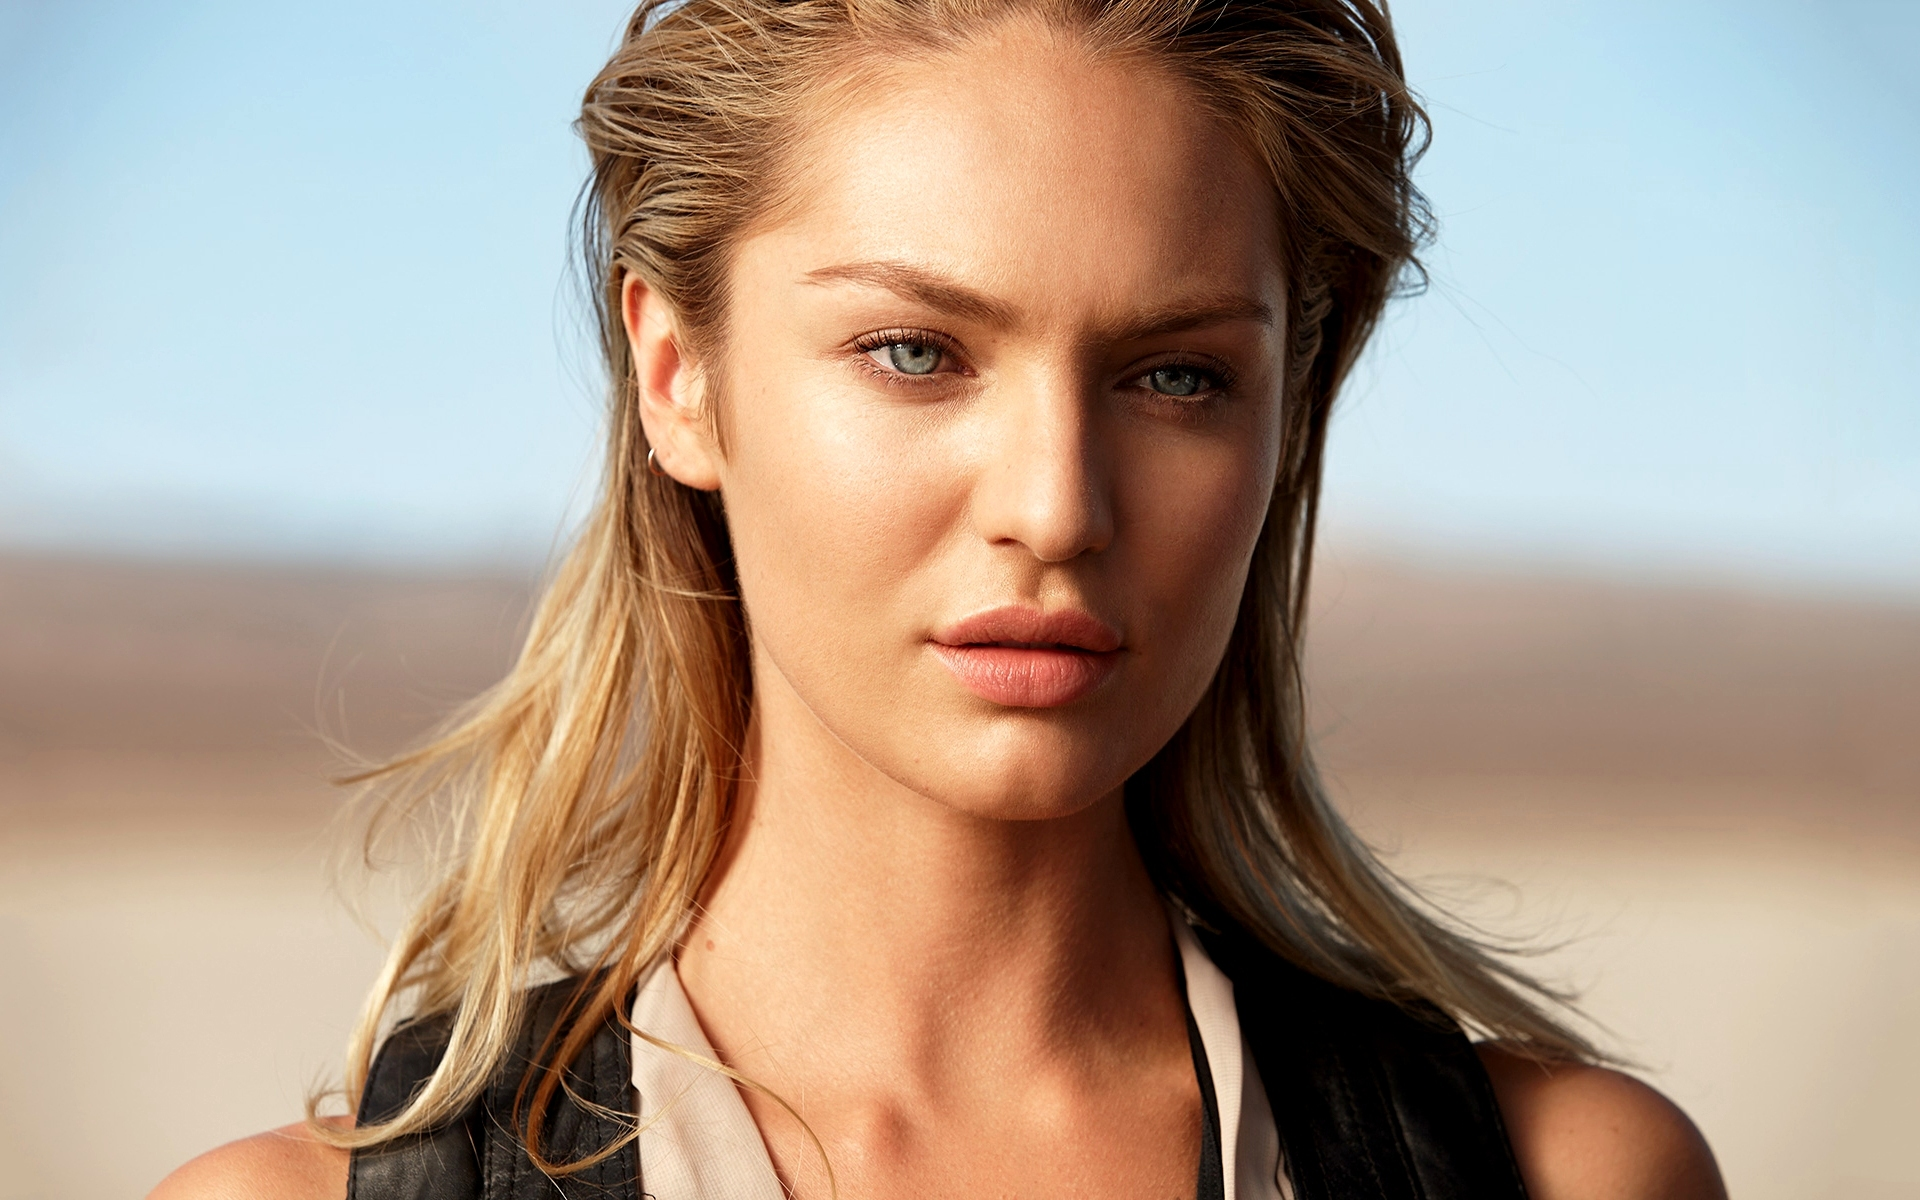 Candice Swanepoel HD Wallpaper   Background Image